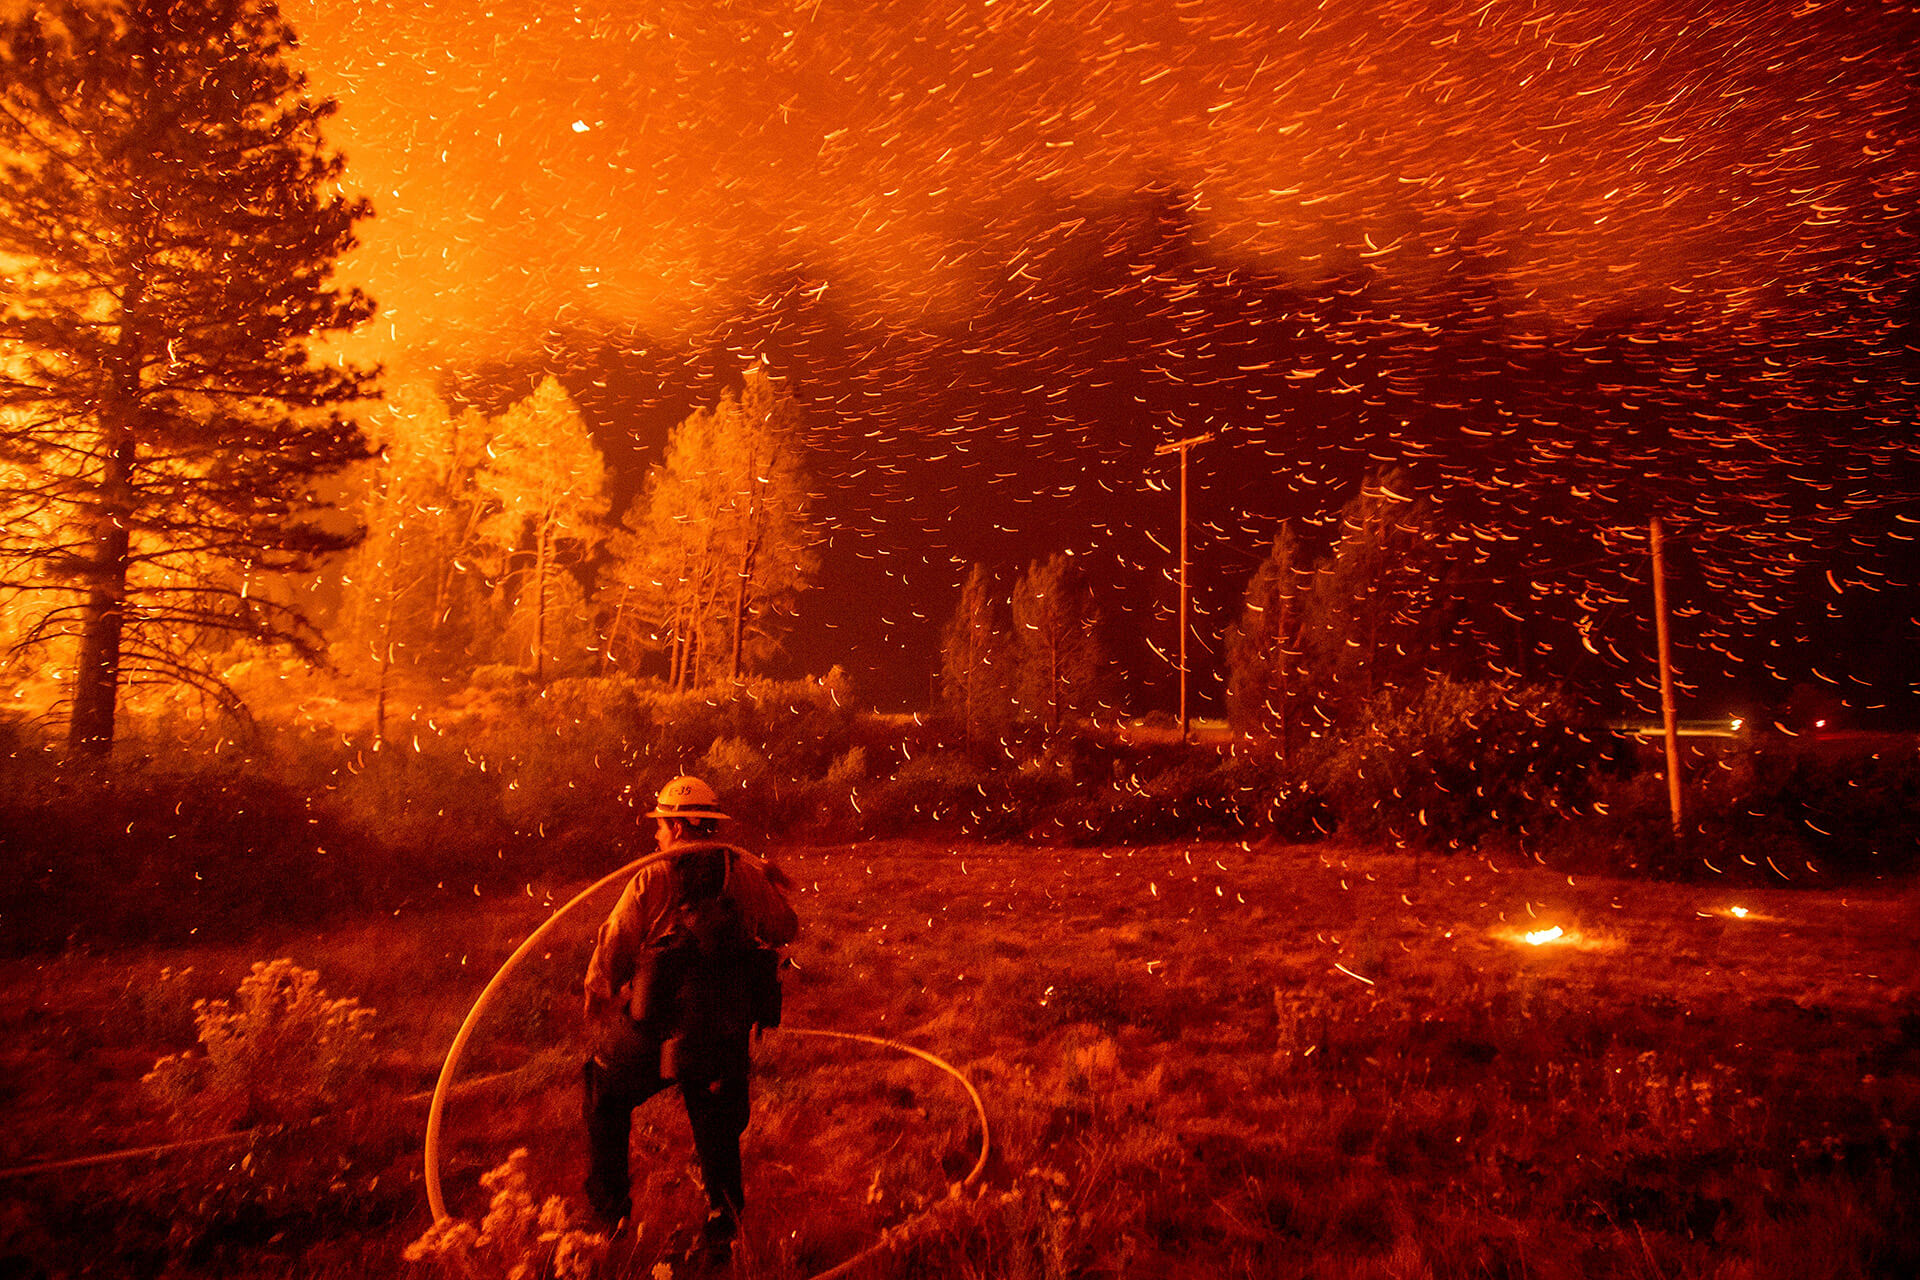 A firefighter works to control a backfire as the Delta Fire burns in California